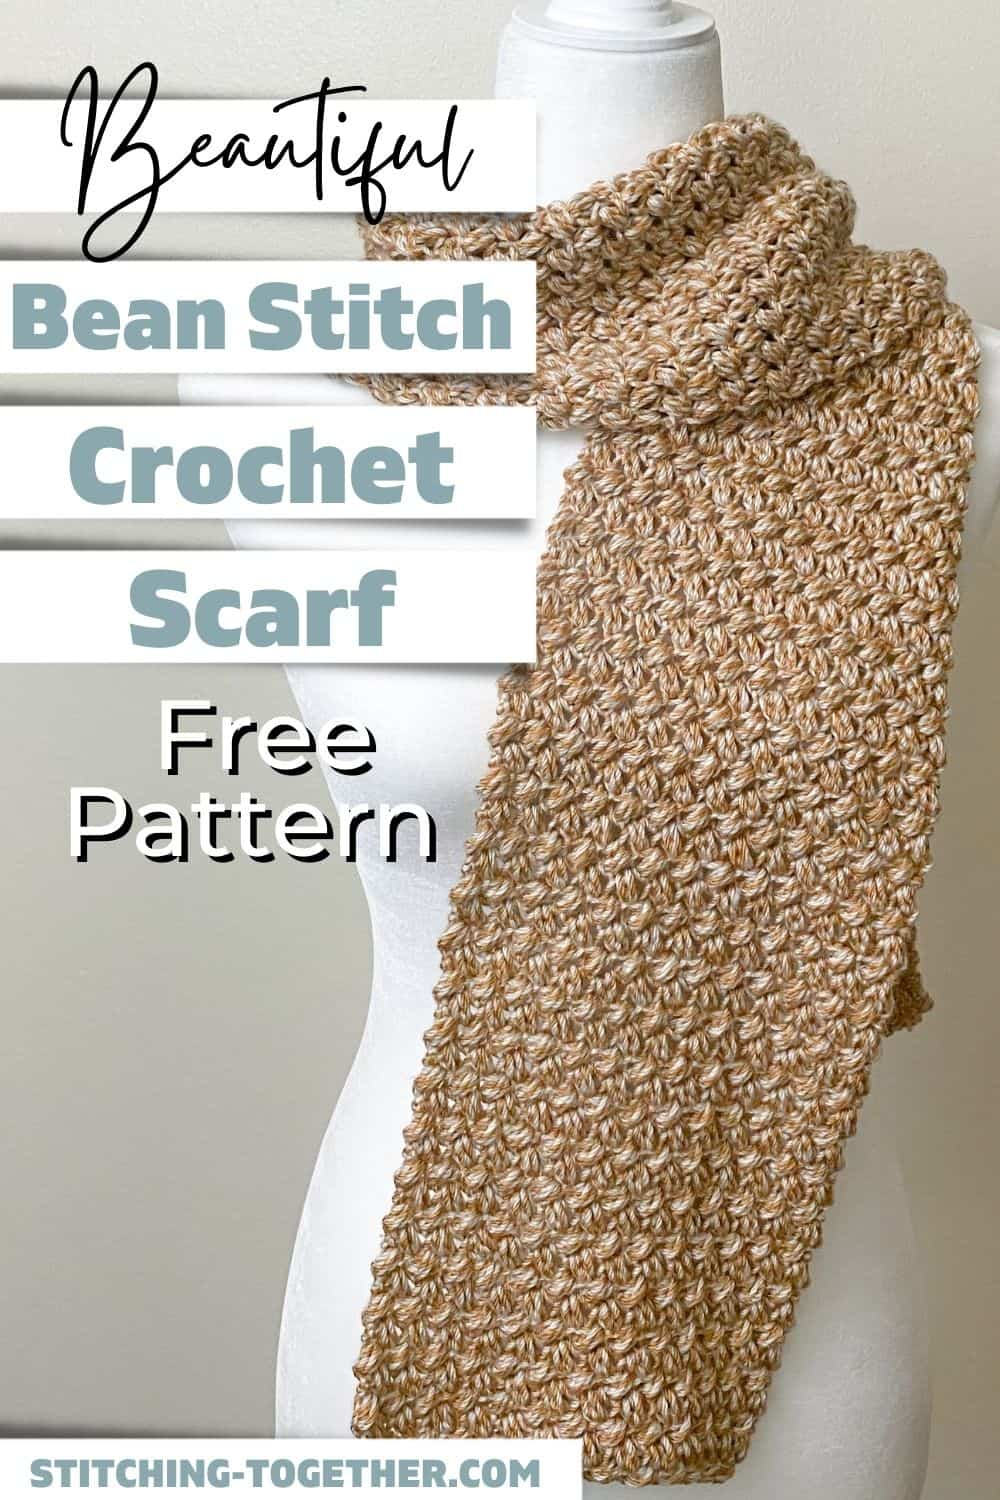 pin image of beautiful bean stitch crochet scarf free pattern with scarf displayed on a mannequin